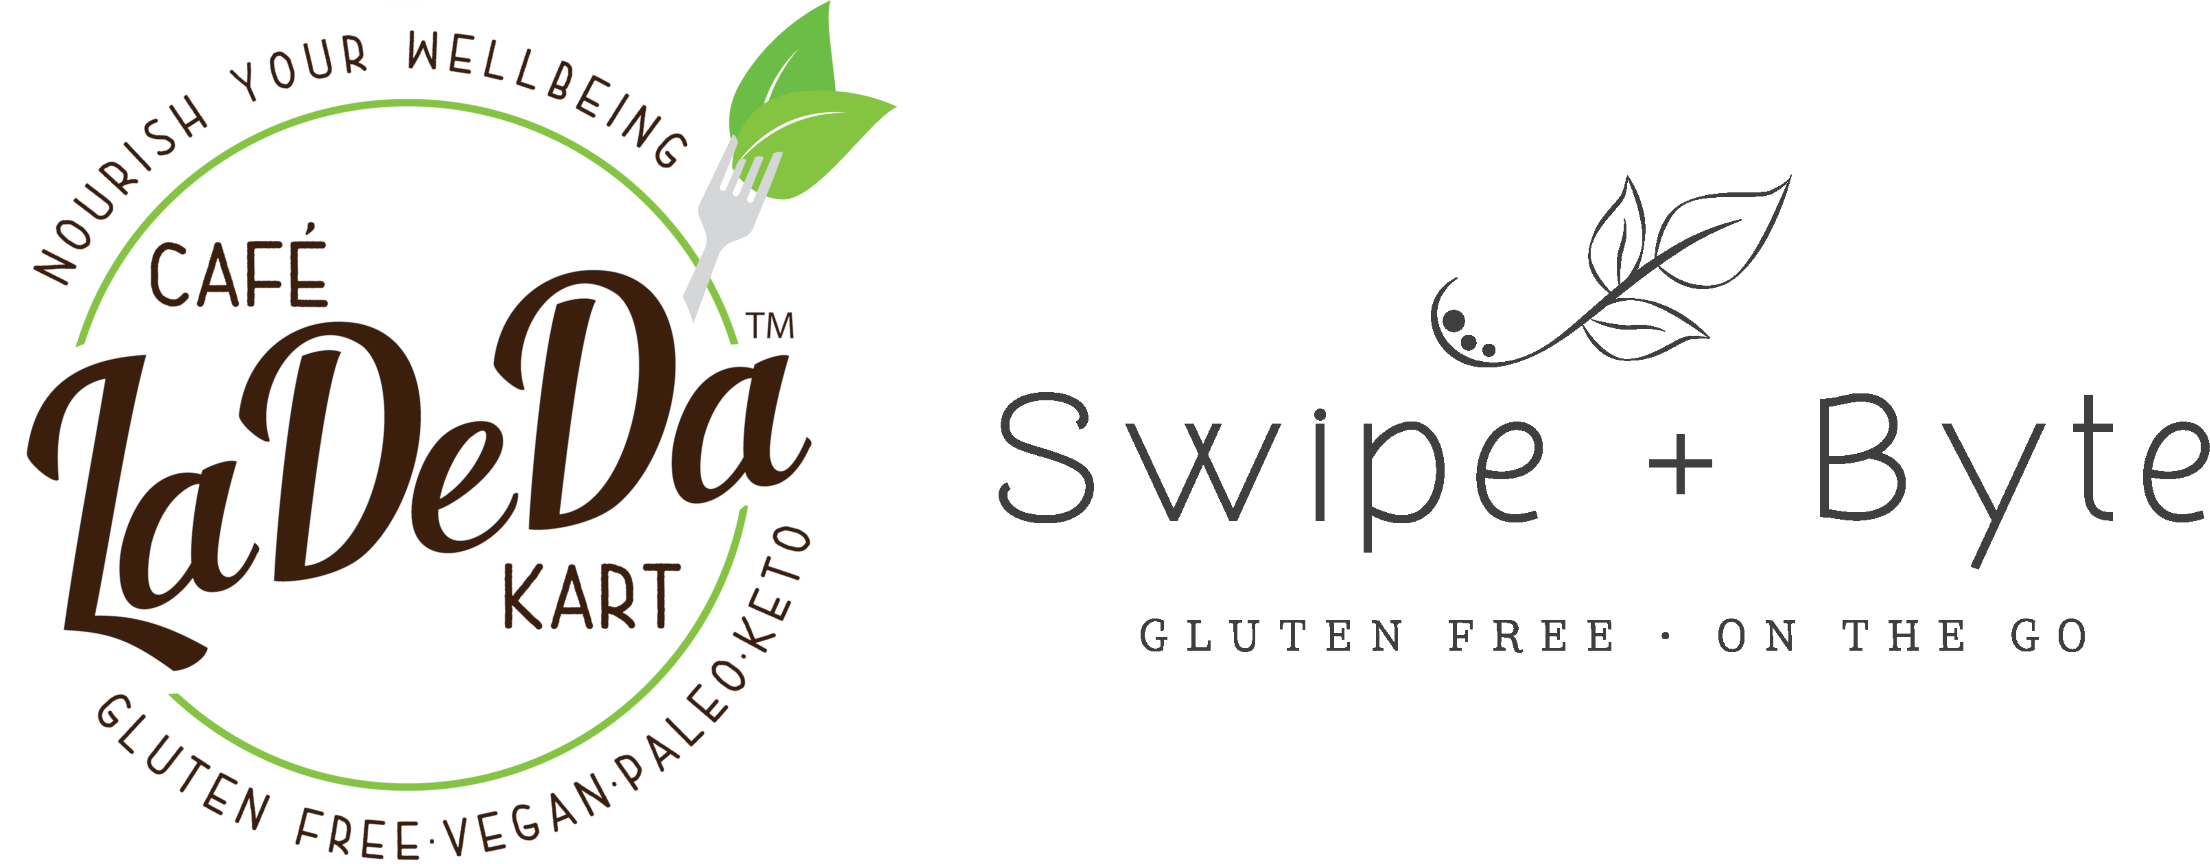 Cafe LaDeDa and Swipe & Byte